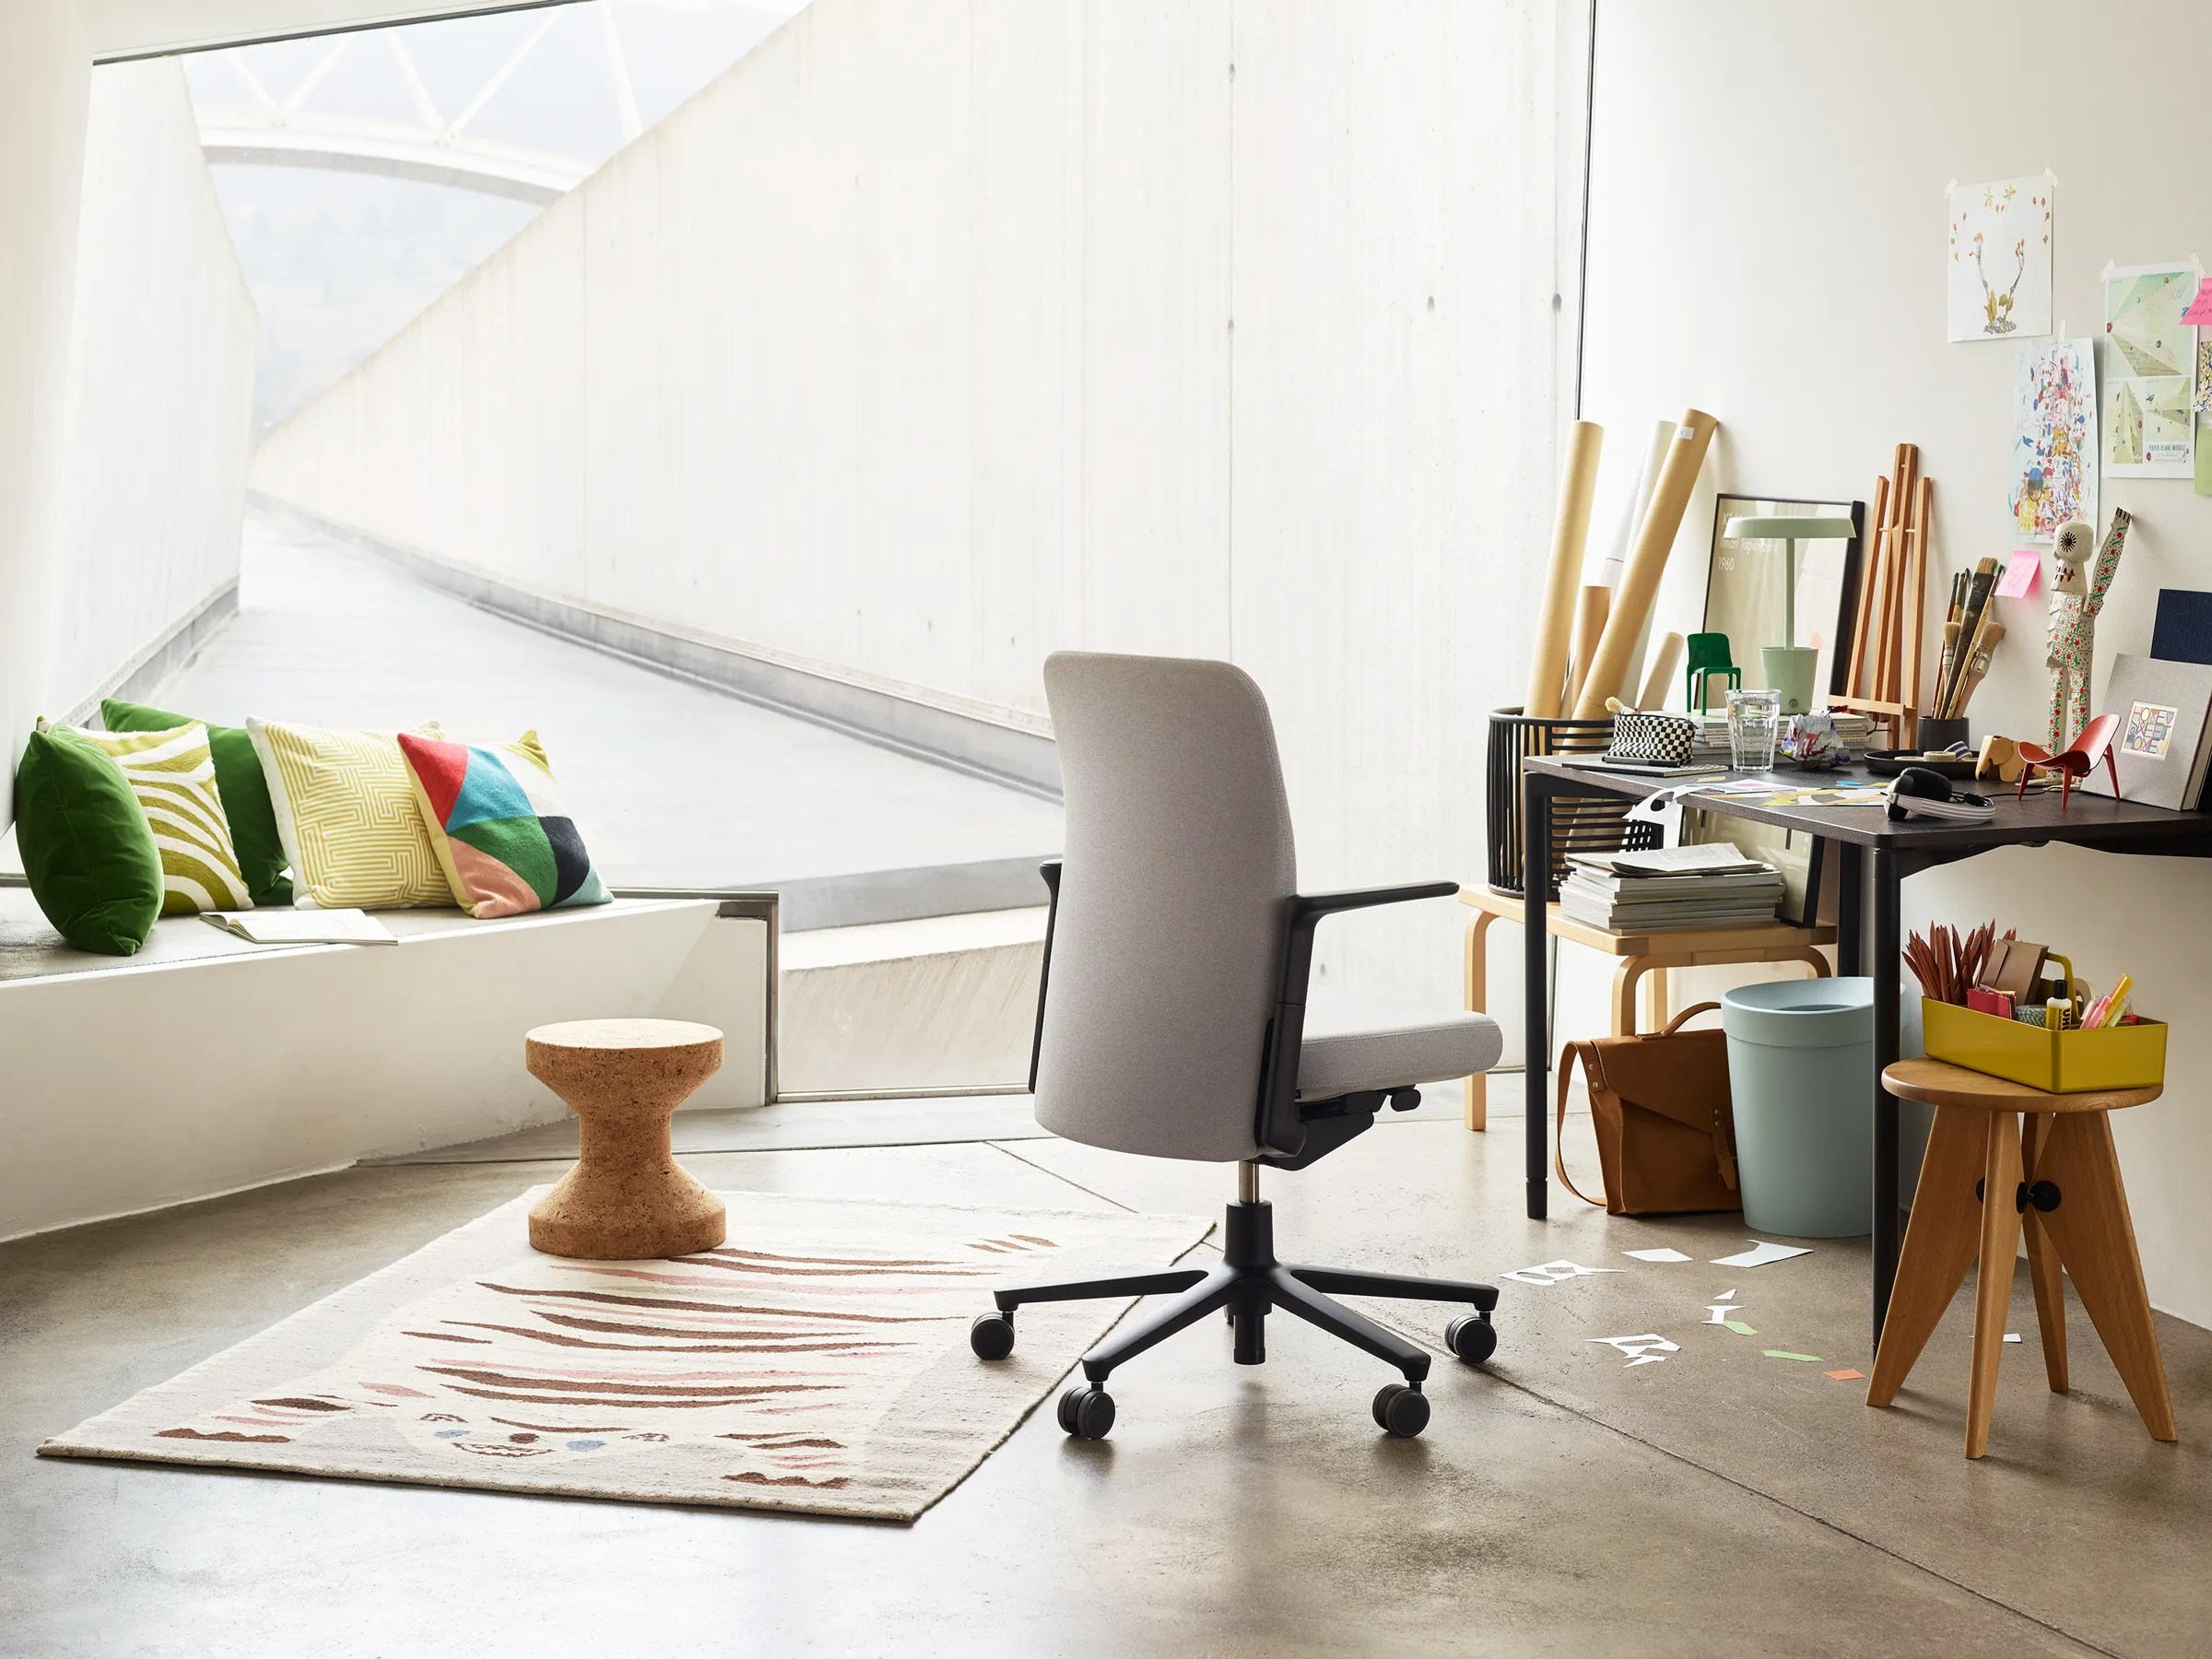 design chair for you lift stairs india barber and osgerby s pacific task will make want to go a sleek that ll actually work